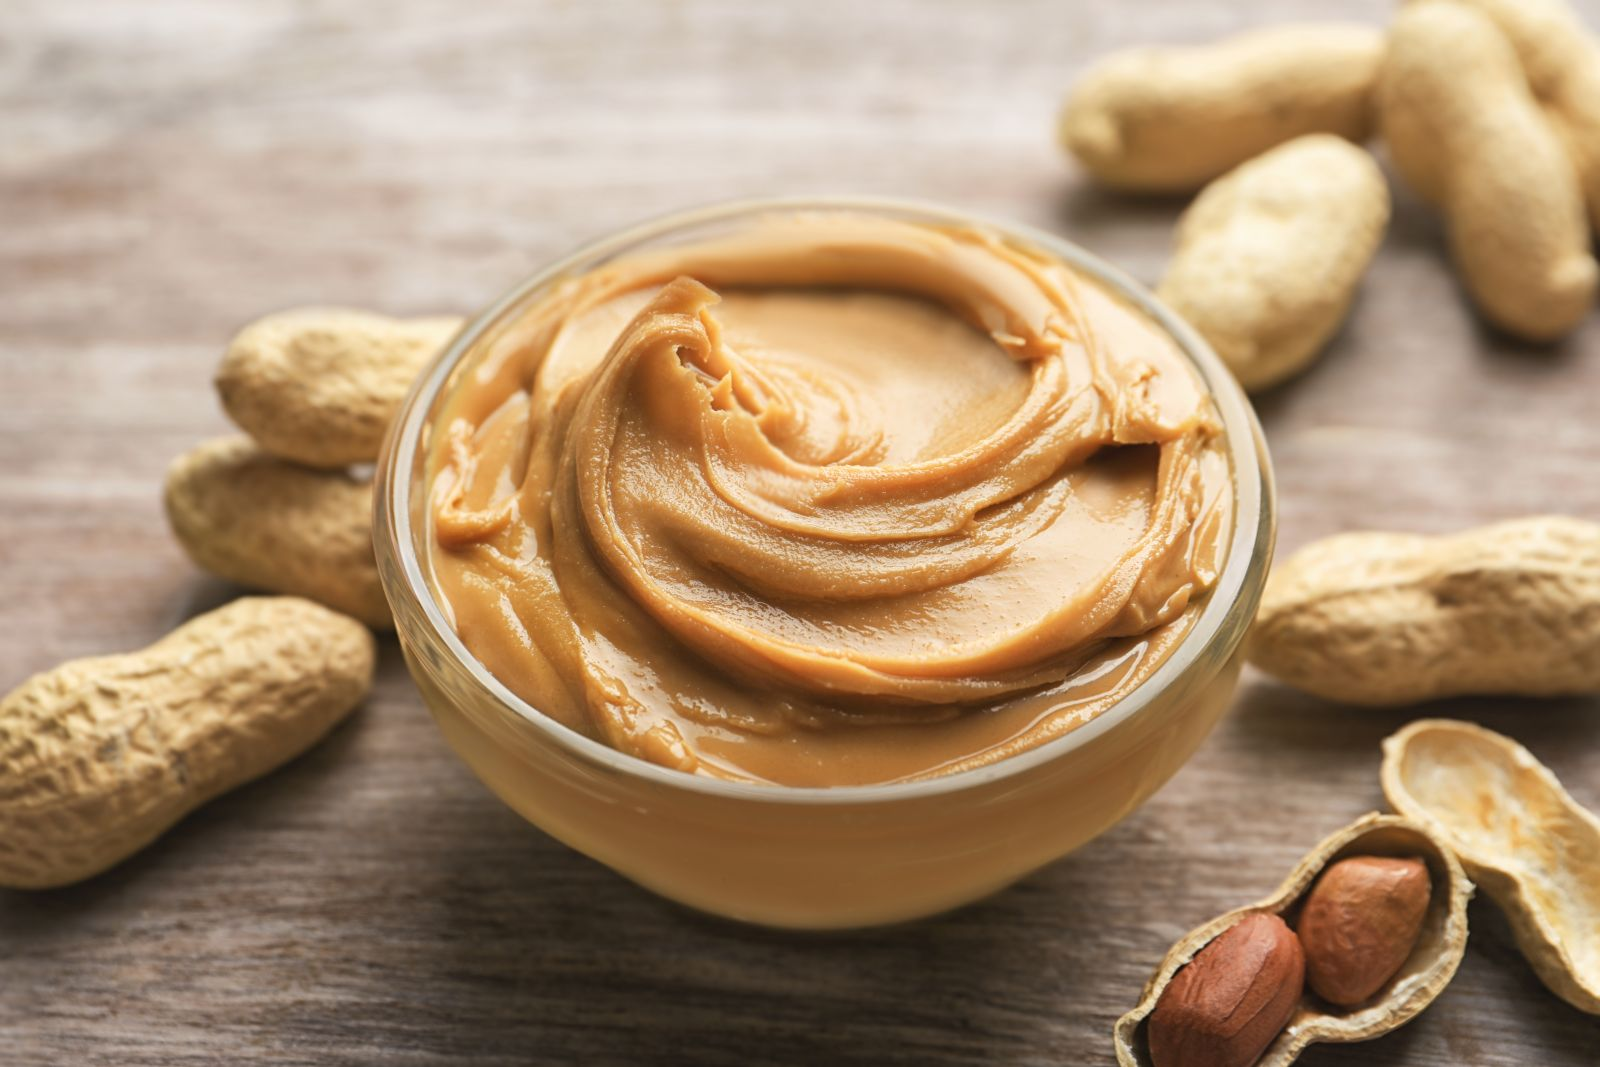 Why you should eat peanut butter recommend